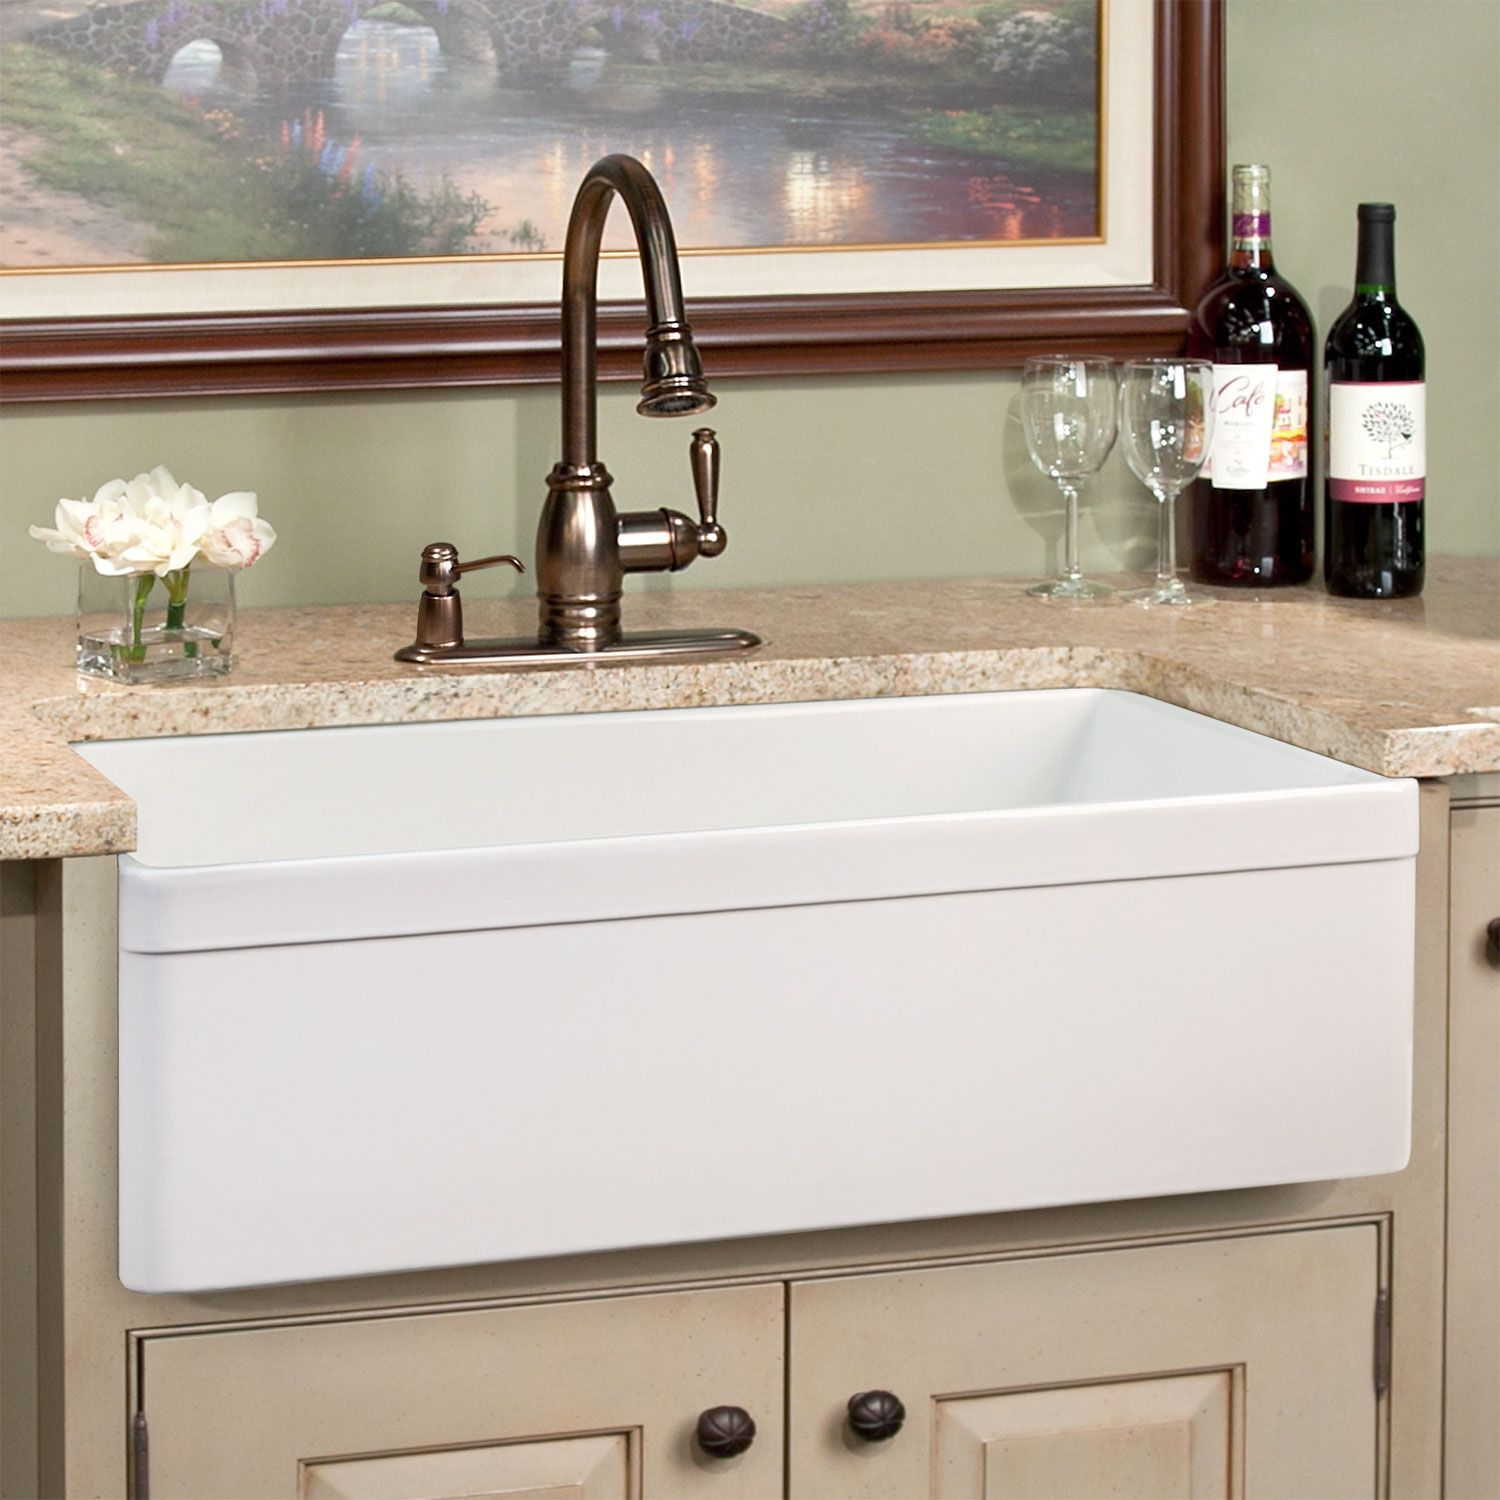 Farmhouse Kitchen Sink For Your Kitchen ~ Nyashaonline.com